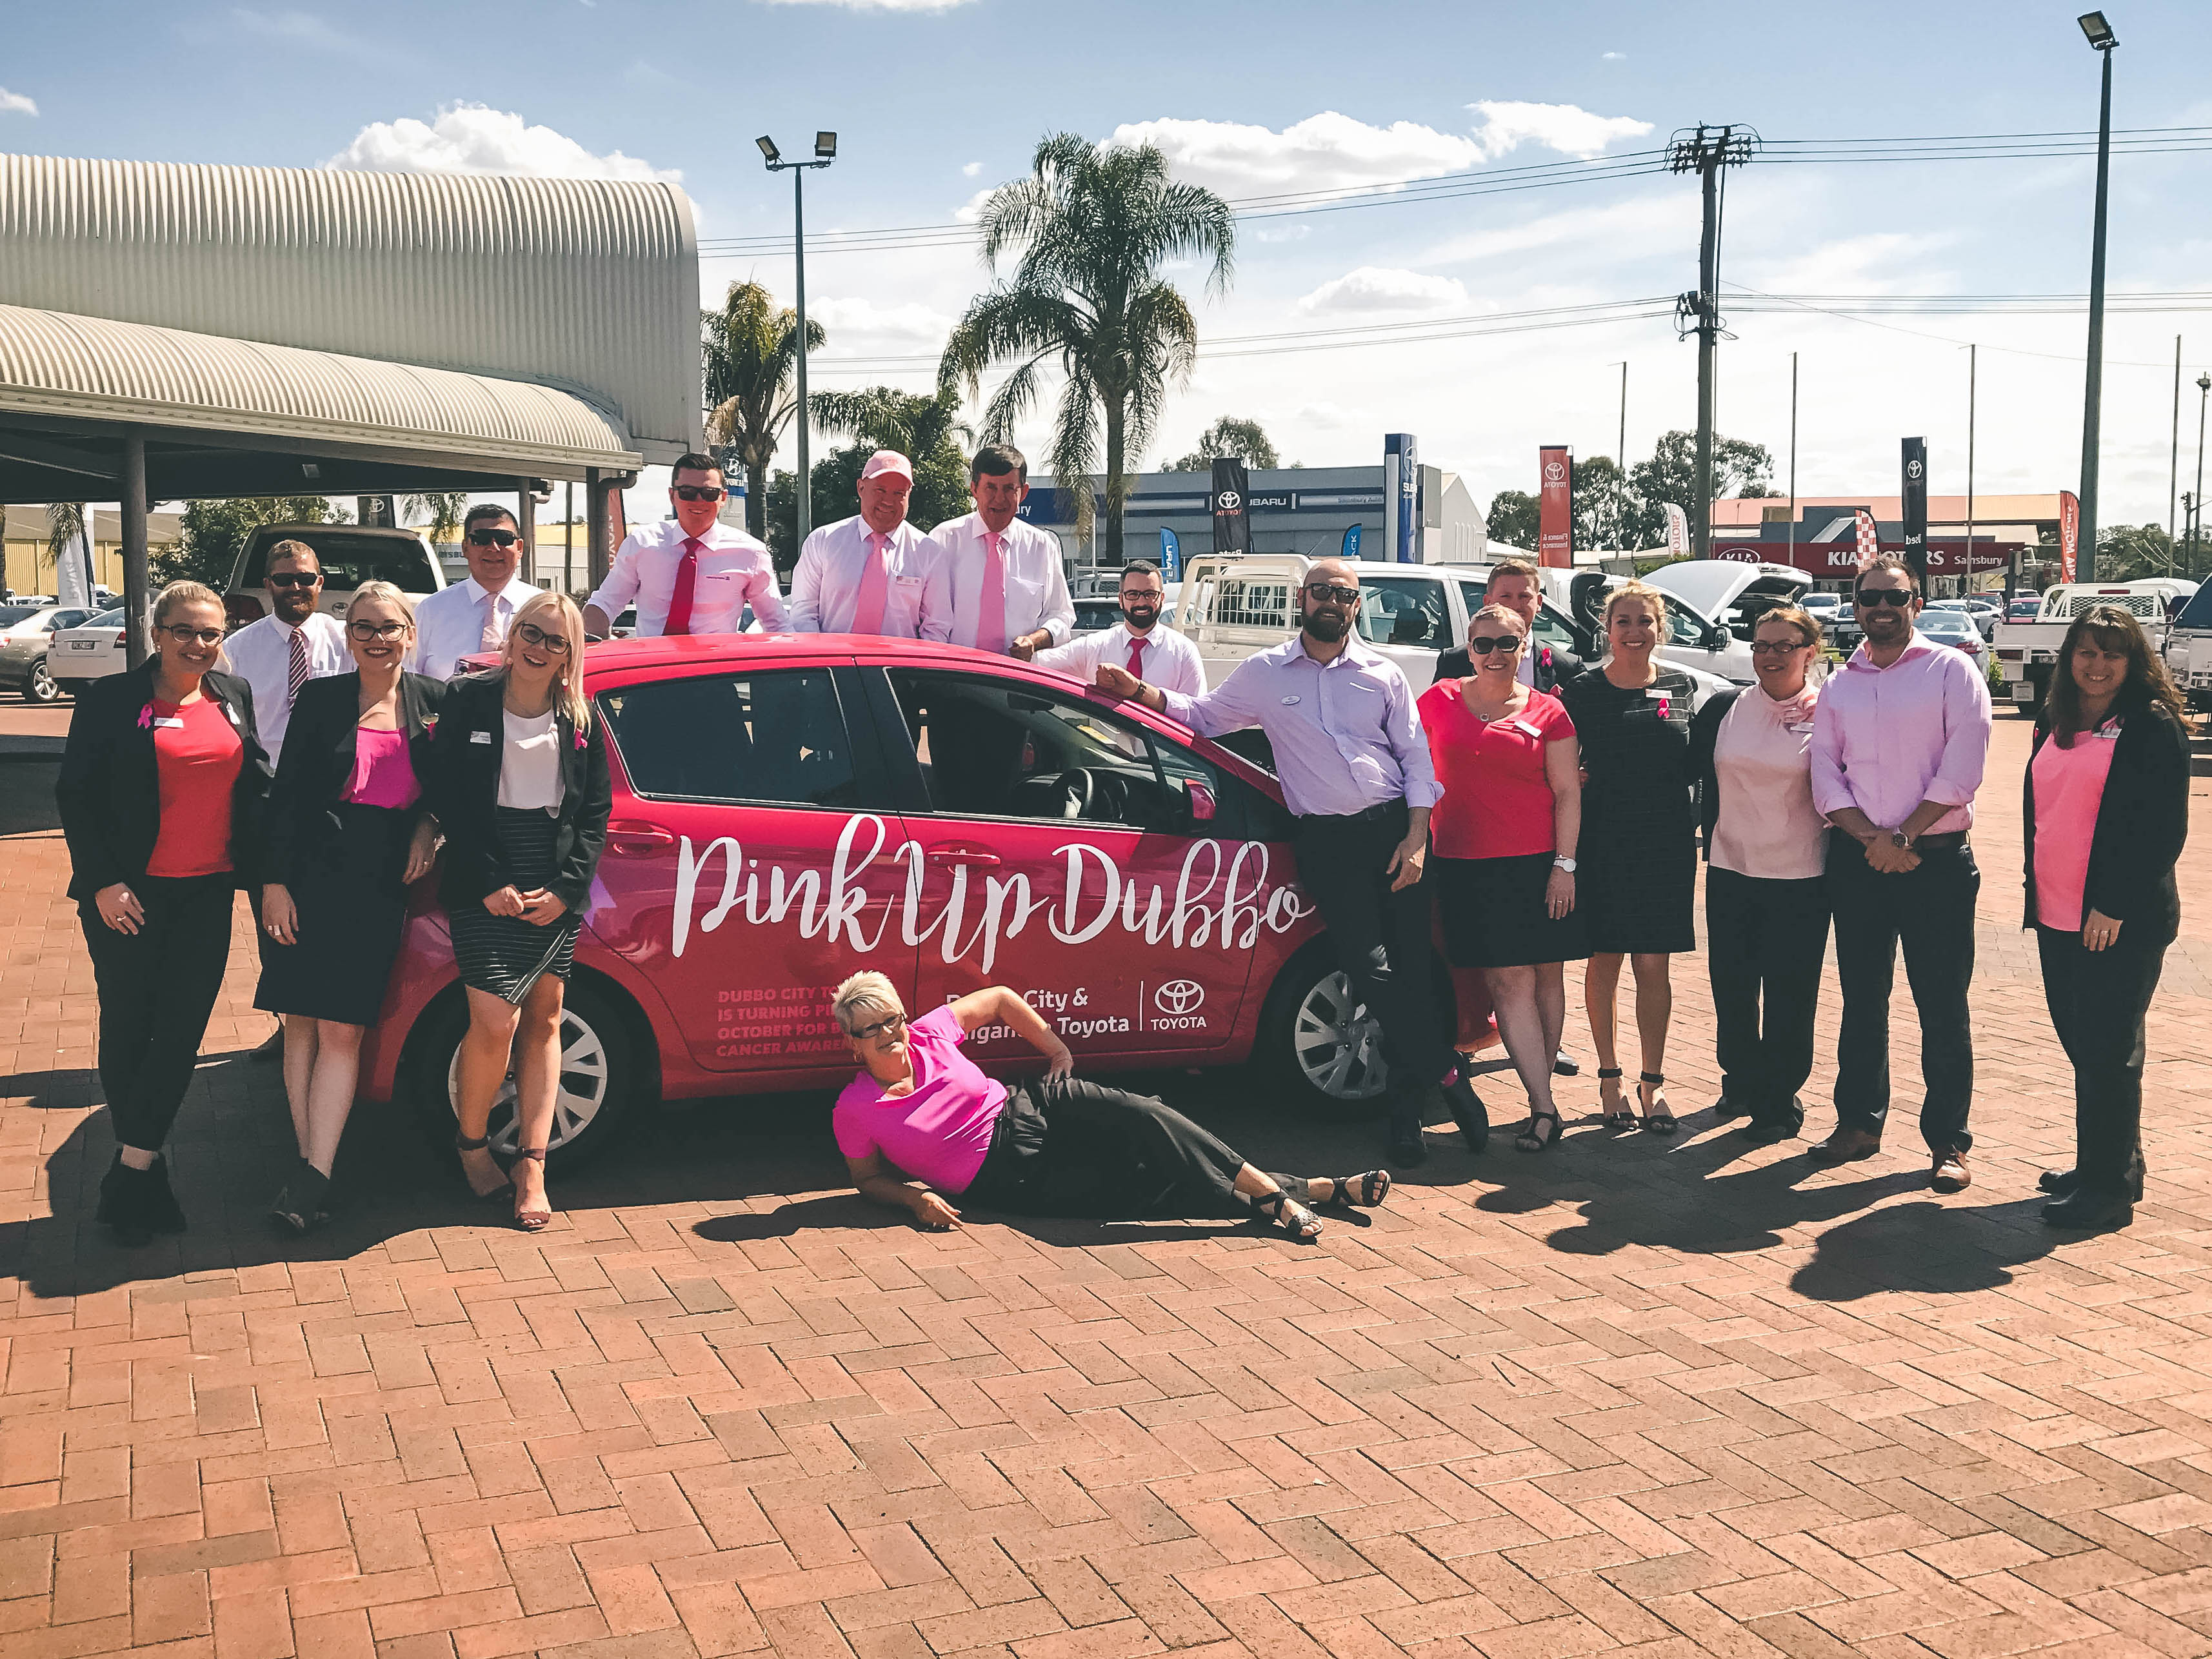 Pink up Dubbo at Dubbo City Toyota